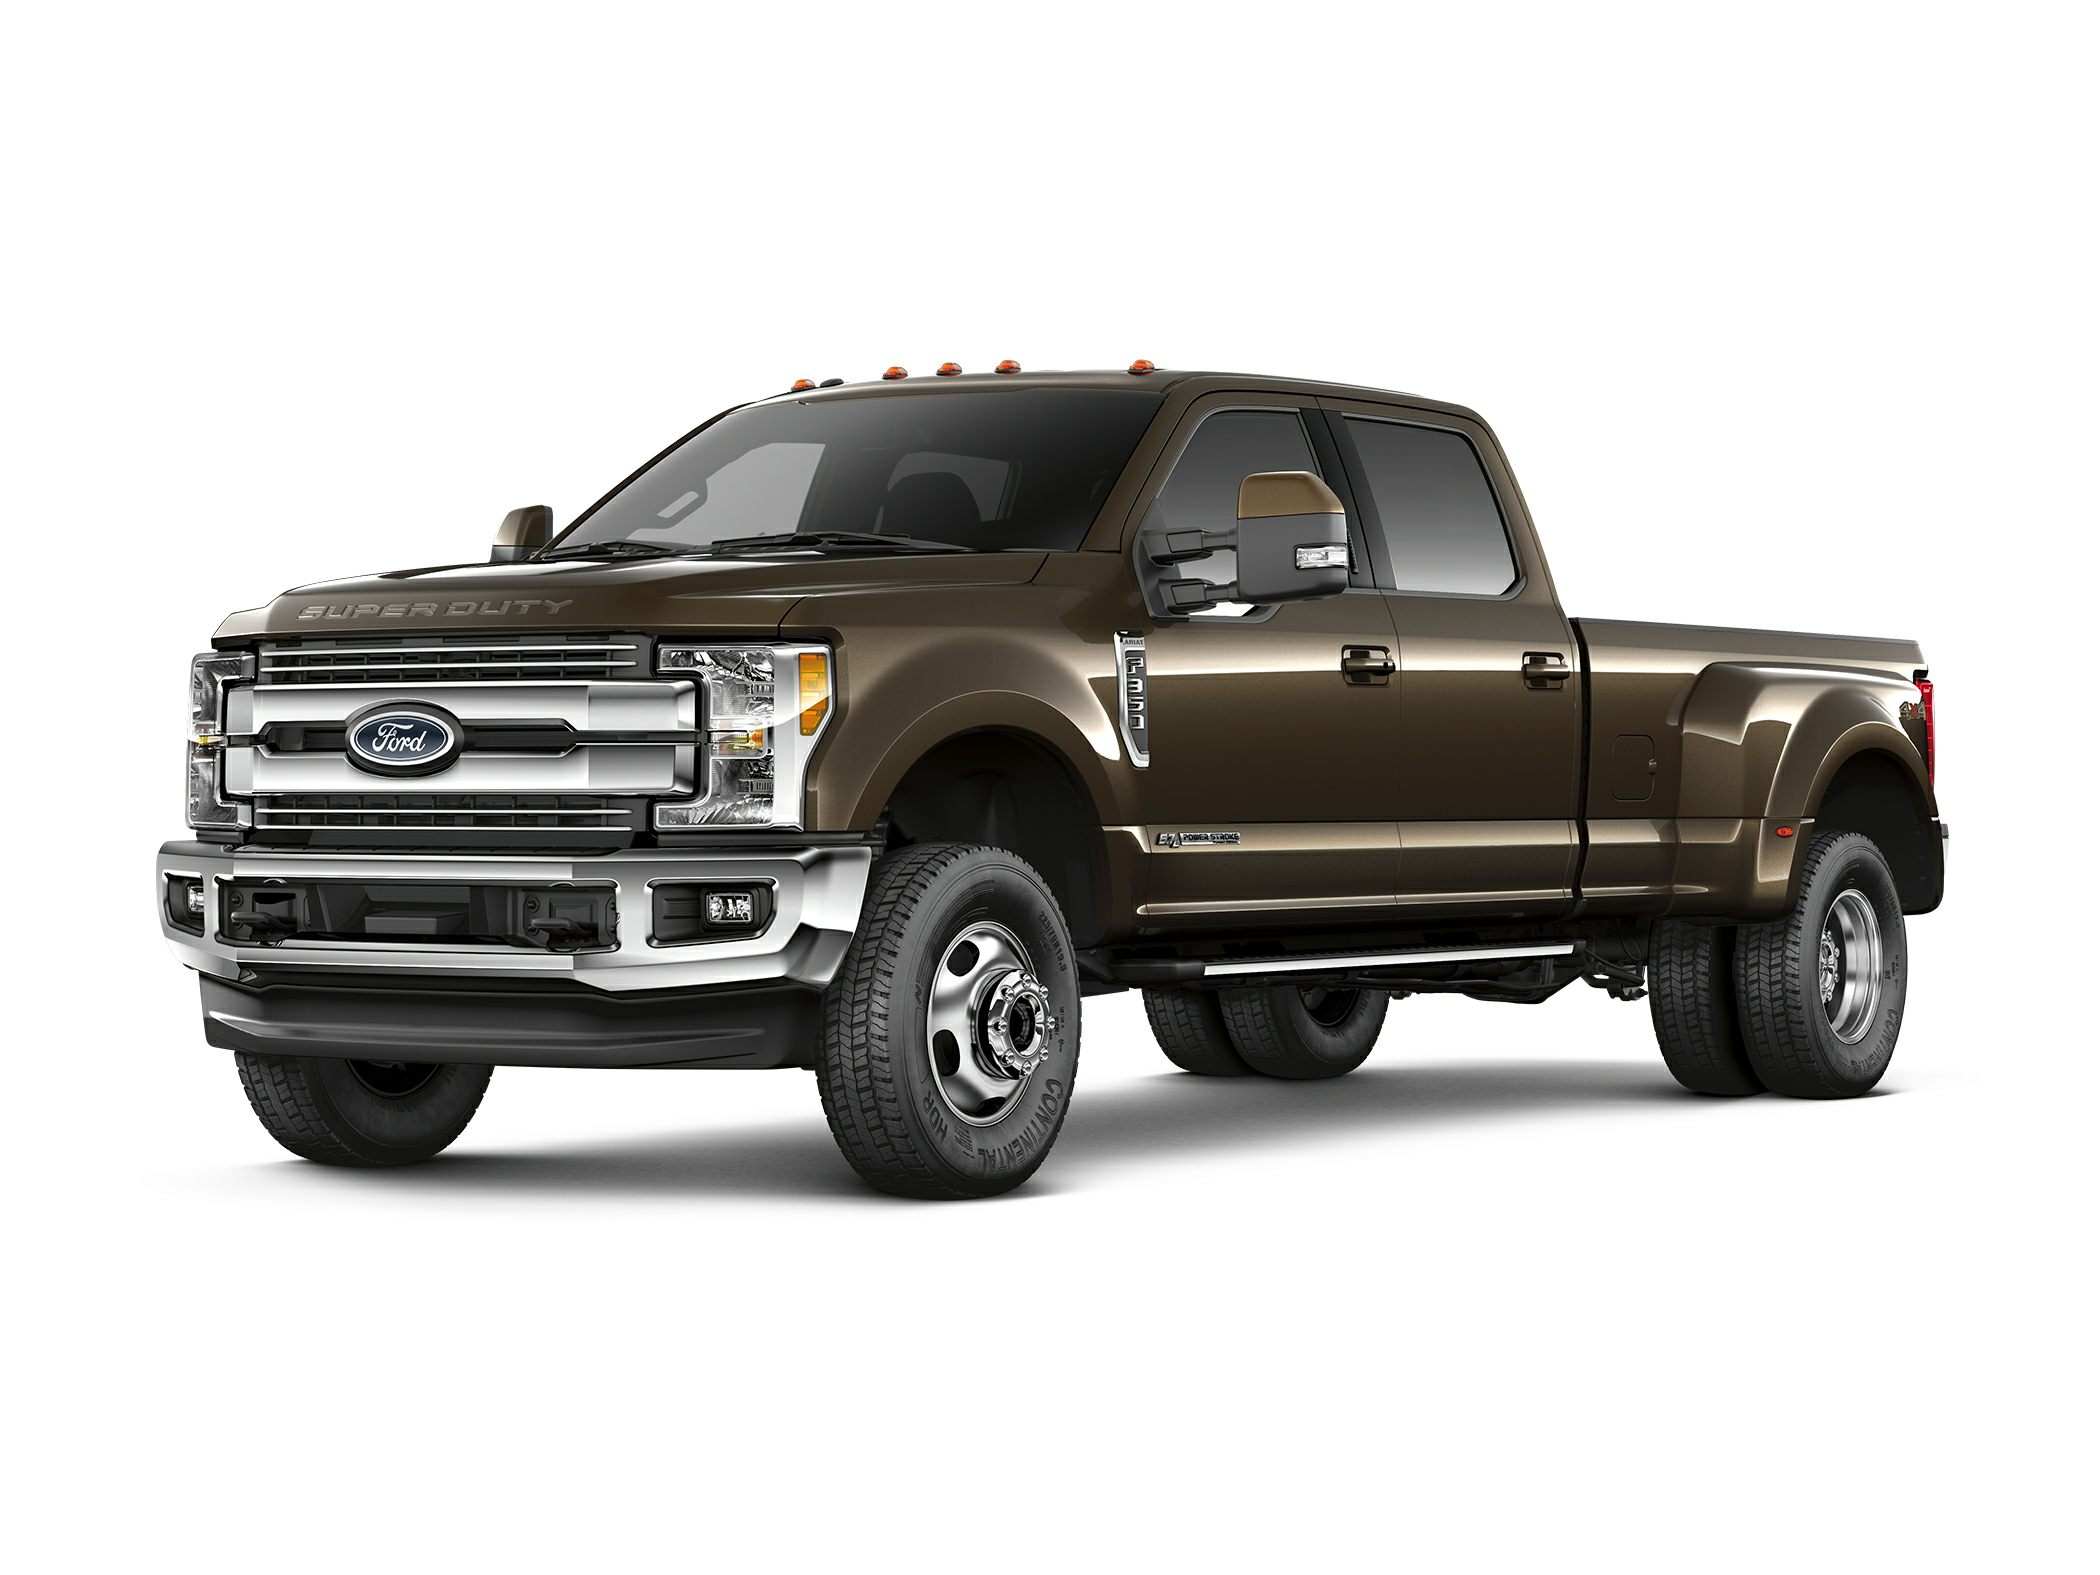 2019 Ford F-350 XLT 4x4 SD Crew Cab 8 ft. box 176 in. WB DRW